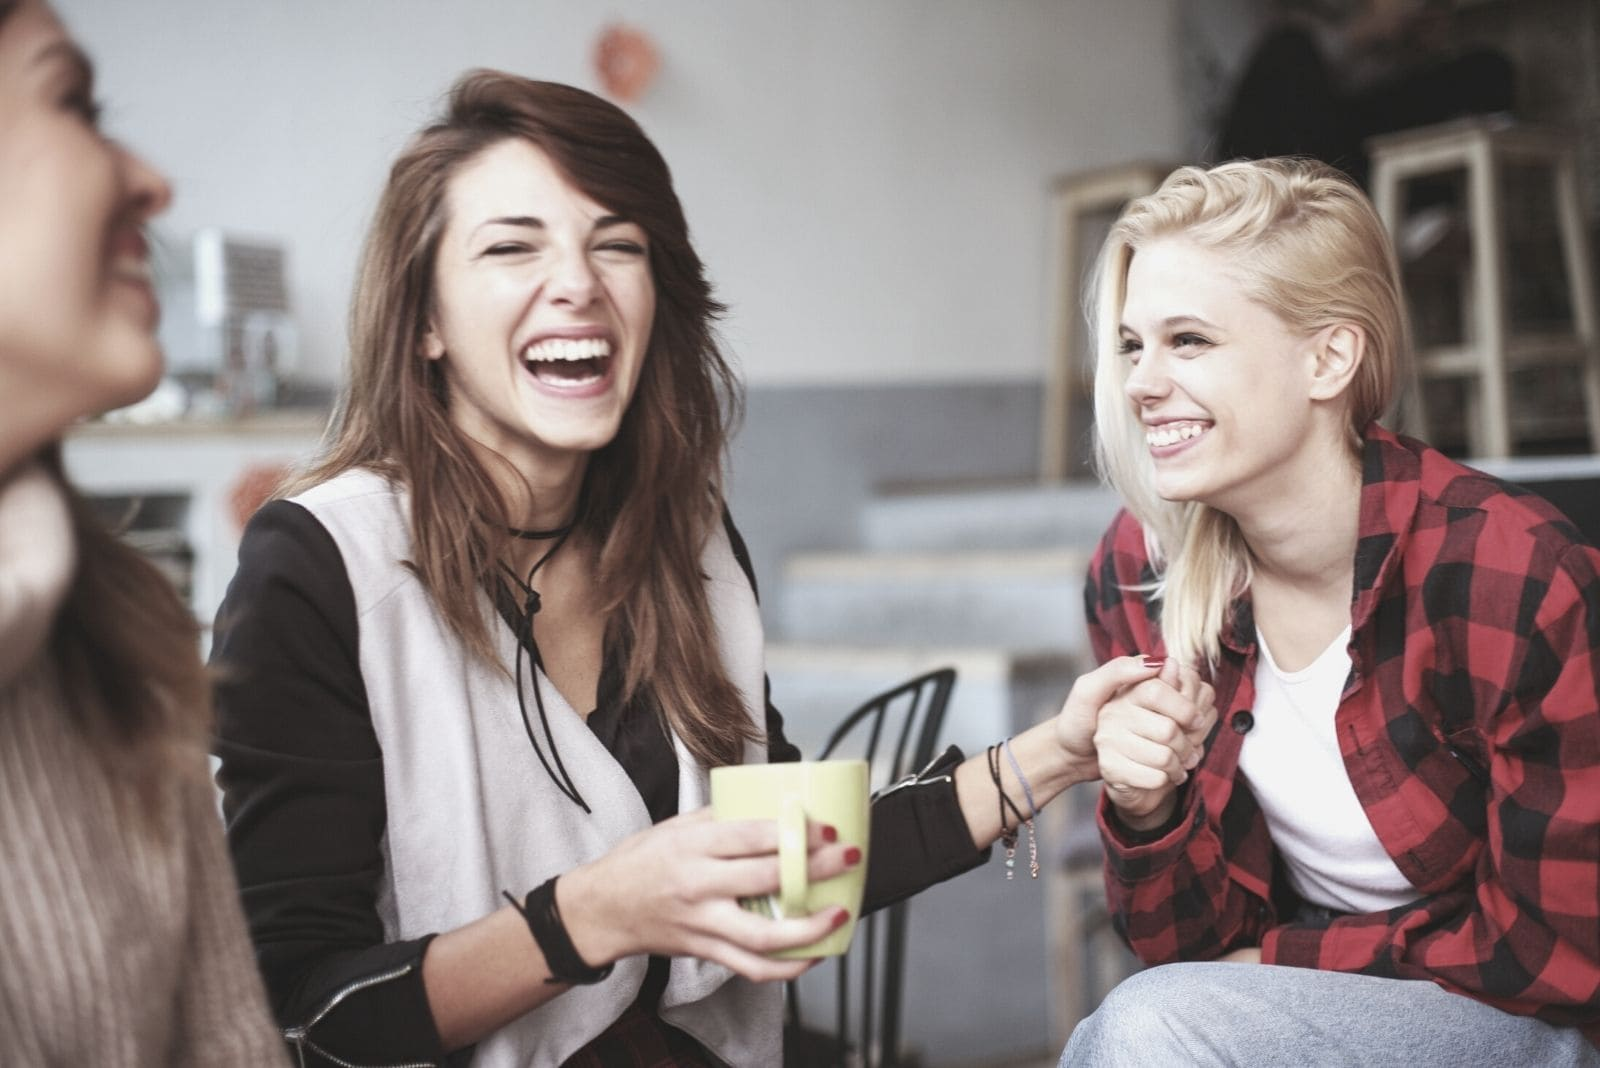 female friends laughing and chatting inside the living room while drinking coffee